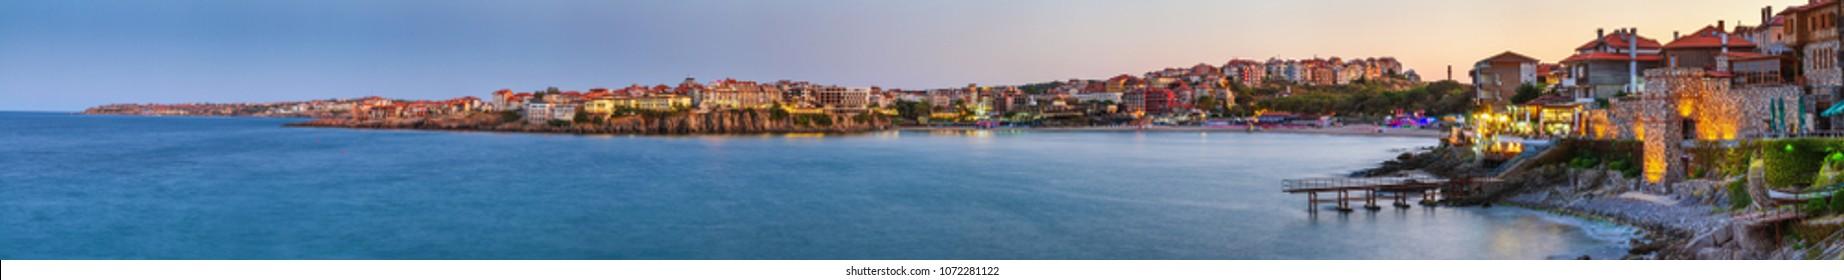 Sozopol, Bulgaria, September 13, 2017. Seaside landscape, panorama, banner - view of the embankment with fortress wall during sunset in Sozopol on the Black Sea coast in Bulgaria.